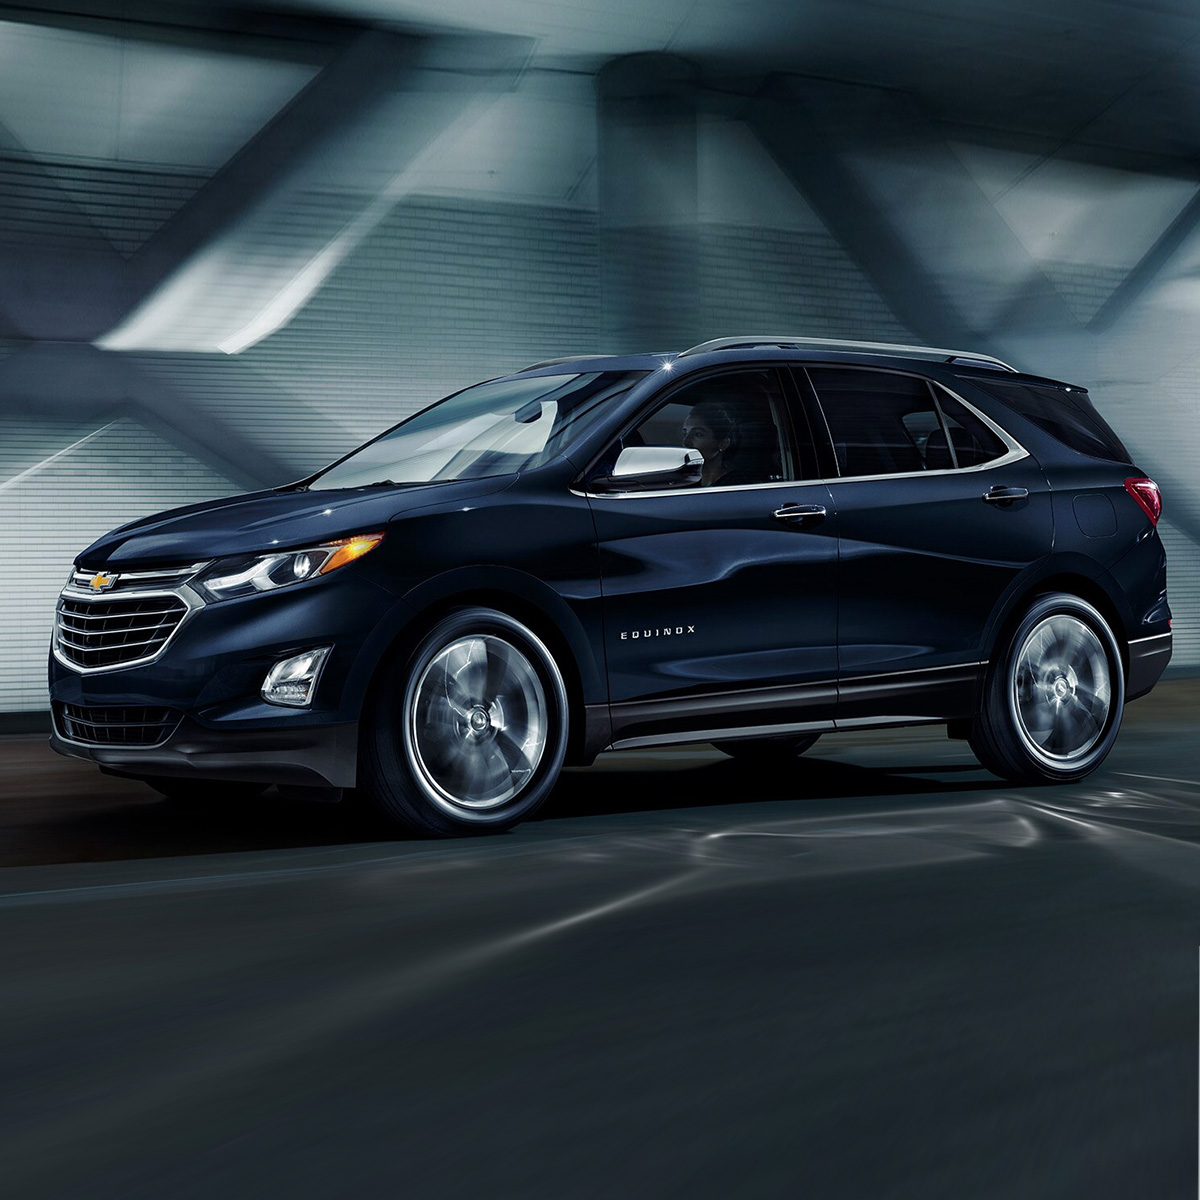 2020 Chevrolet Equinox in blue